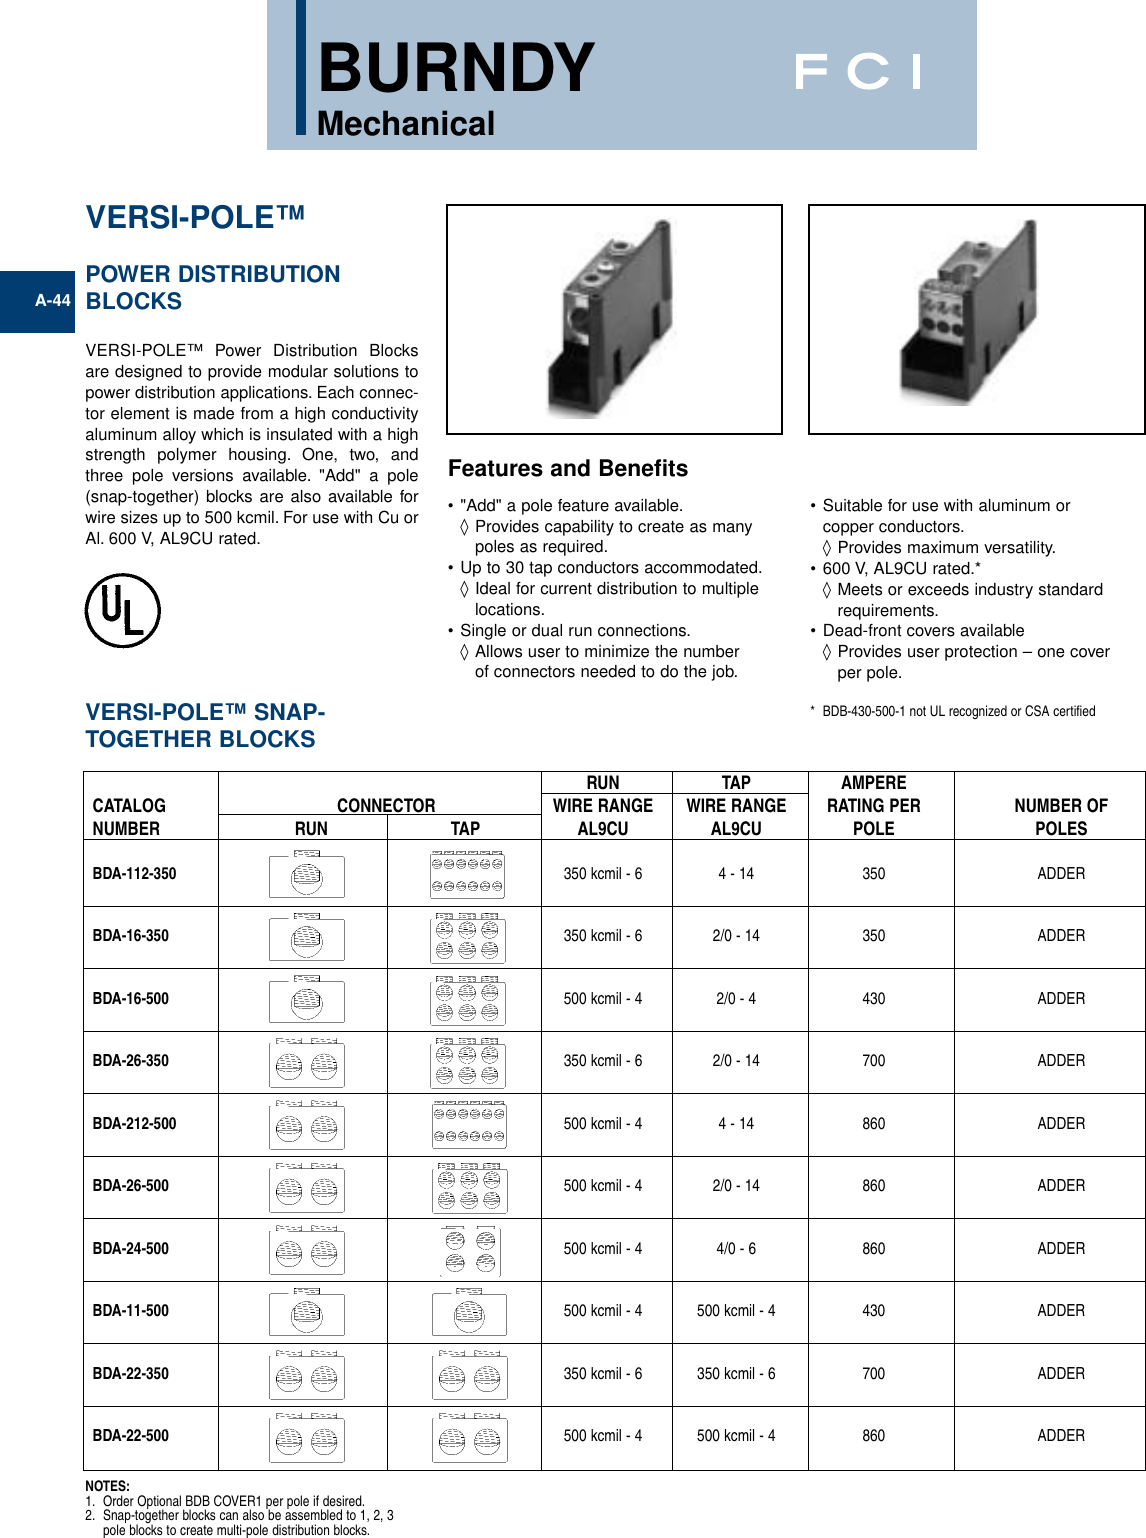 250MCM-6 AWG Line and 250MCM-6 AWG Load Side Configuration 1.71 Width Splicer//Reducers 4.00 Length 1.71 Width 2.62 Height 4.00 Length NSi Industries AM-N1-N1 Connector Blok Power Distribution and Terminal Block 2.62 Height